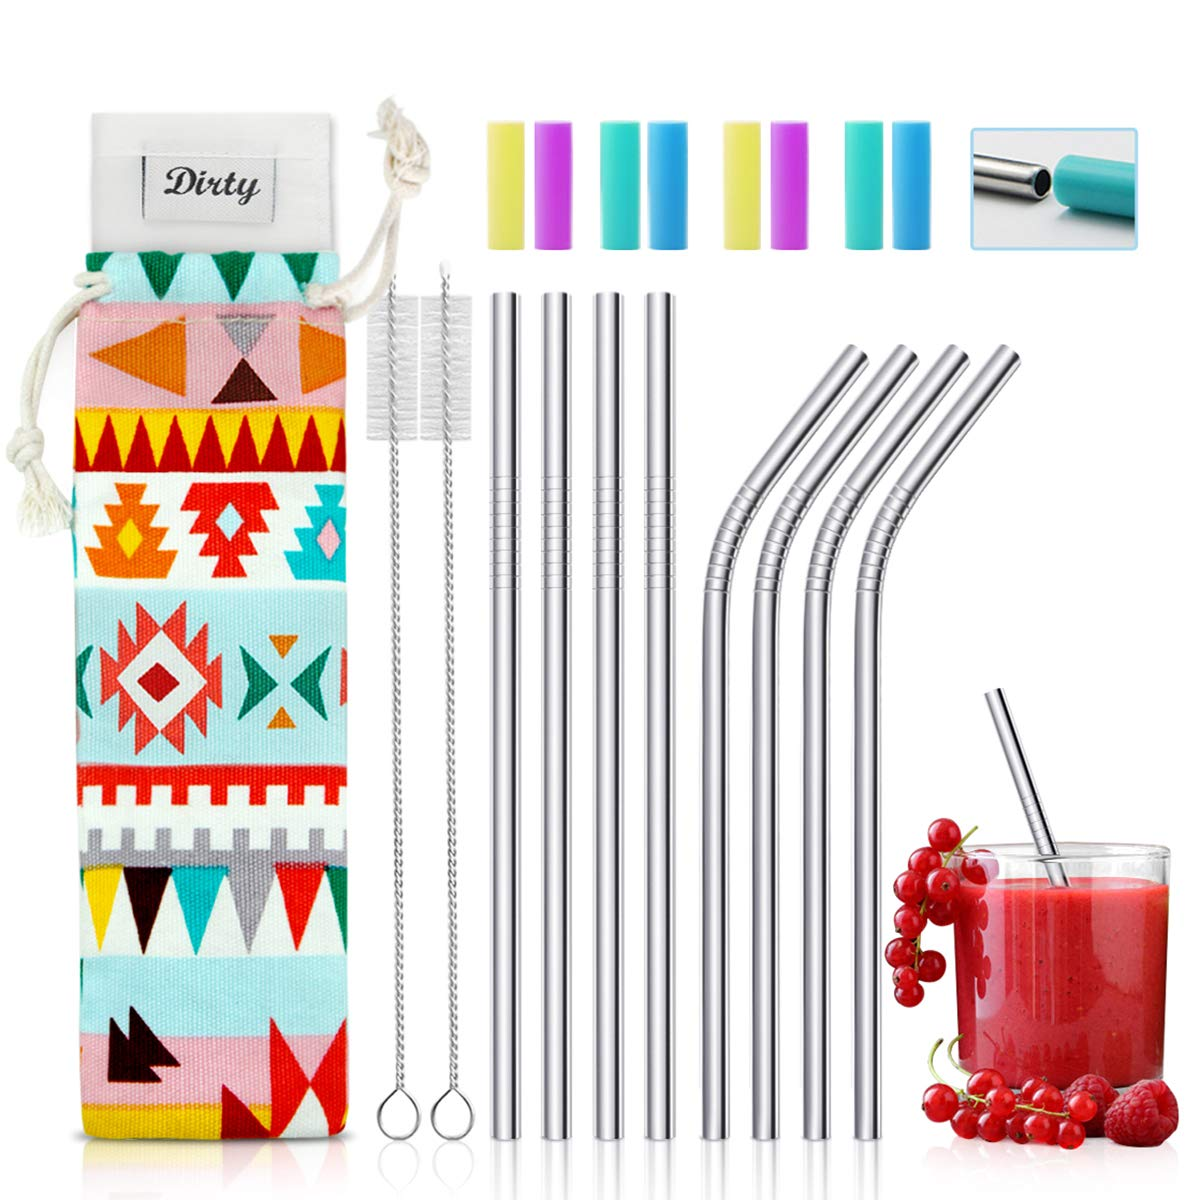 Short Stainless Steel Straws - Great for kids or for cocktails. This set comes with a carrying case, brush cleaner and silicone tips. Great to put in your Silikids cup lids.